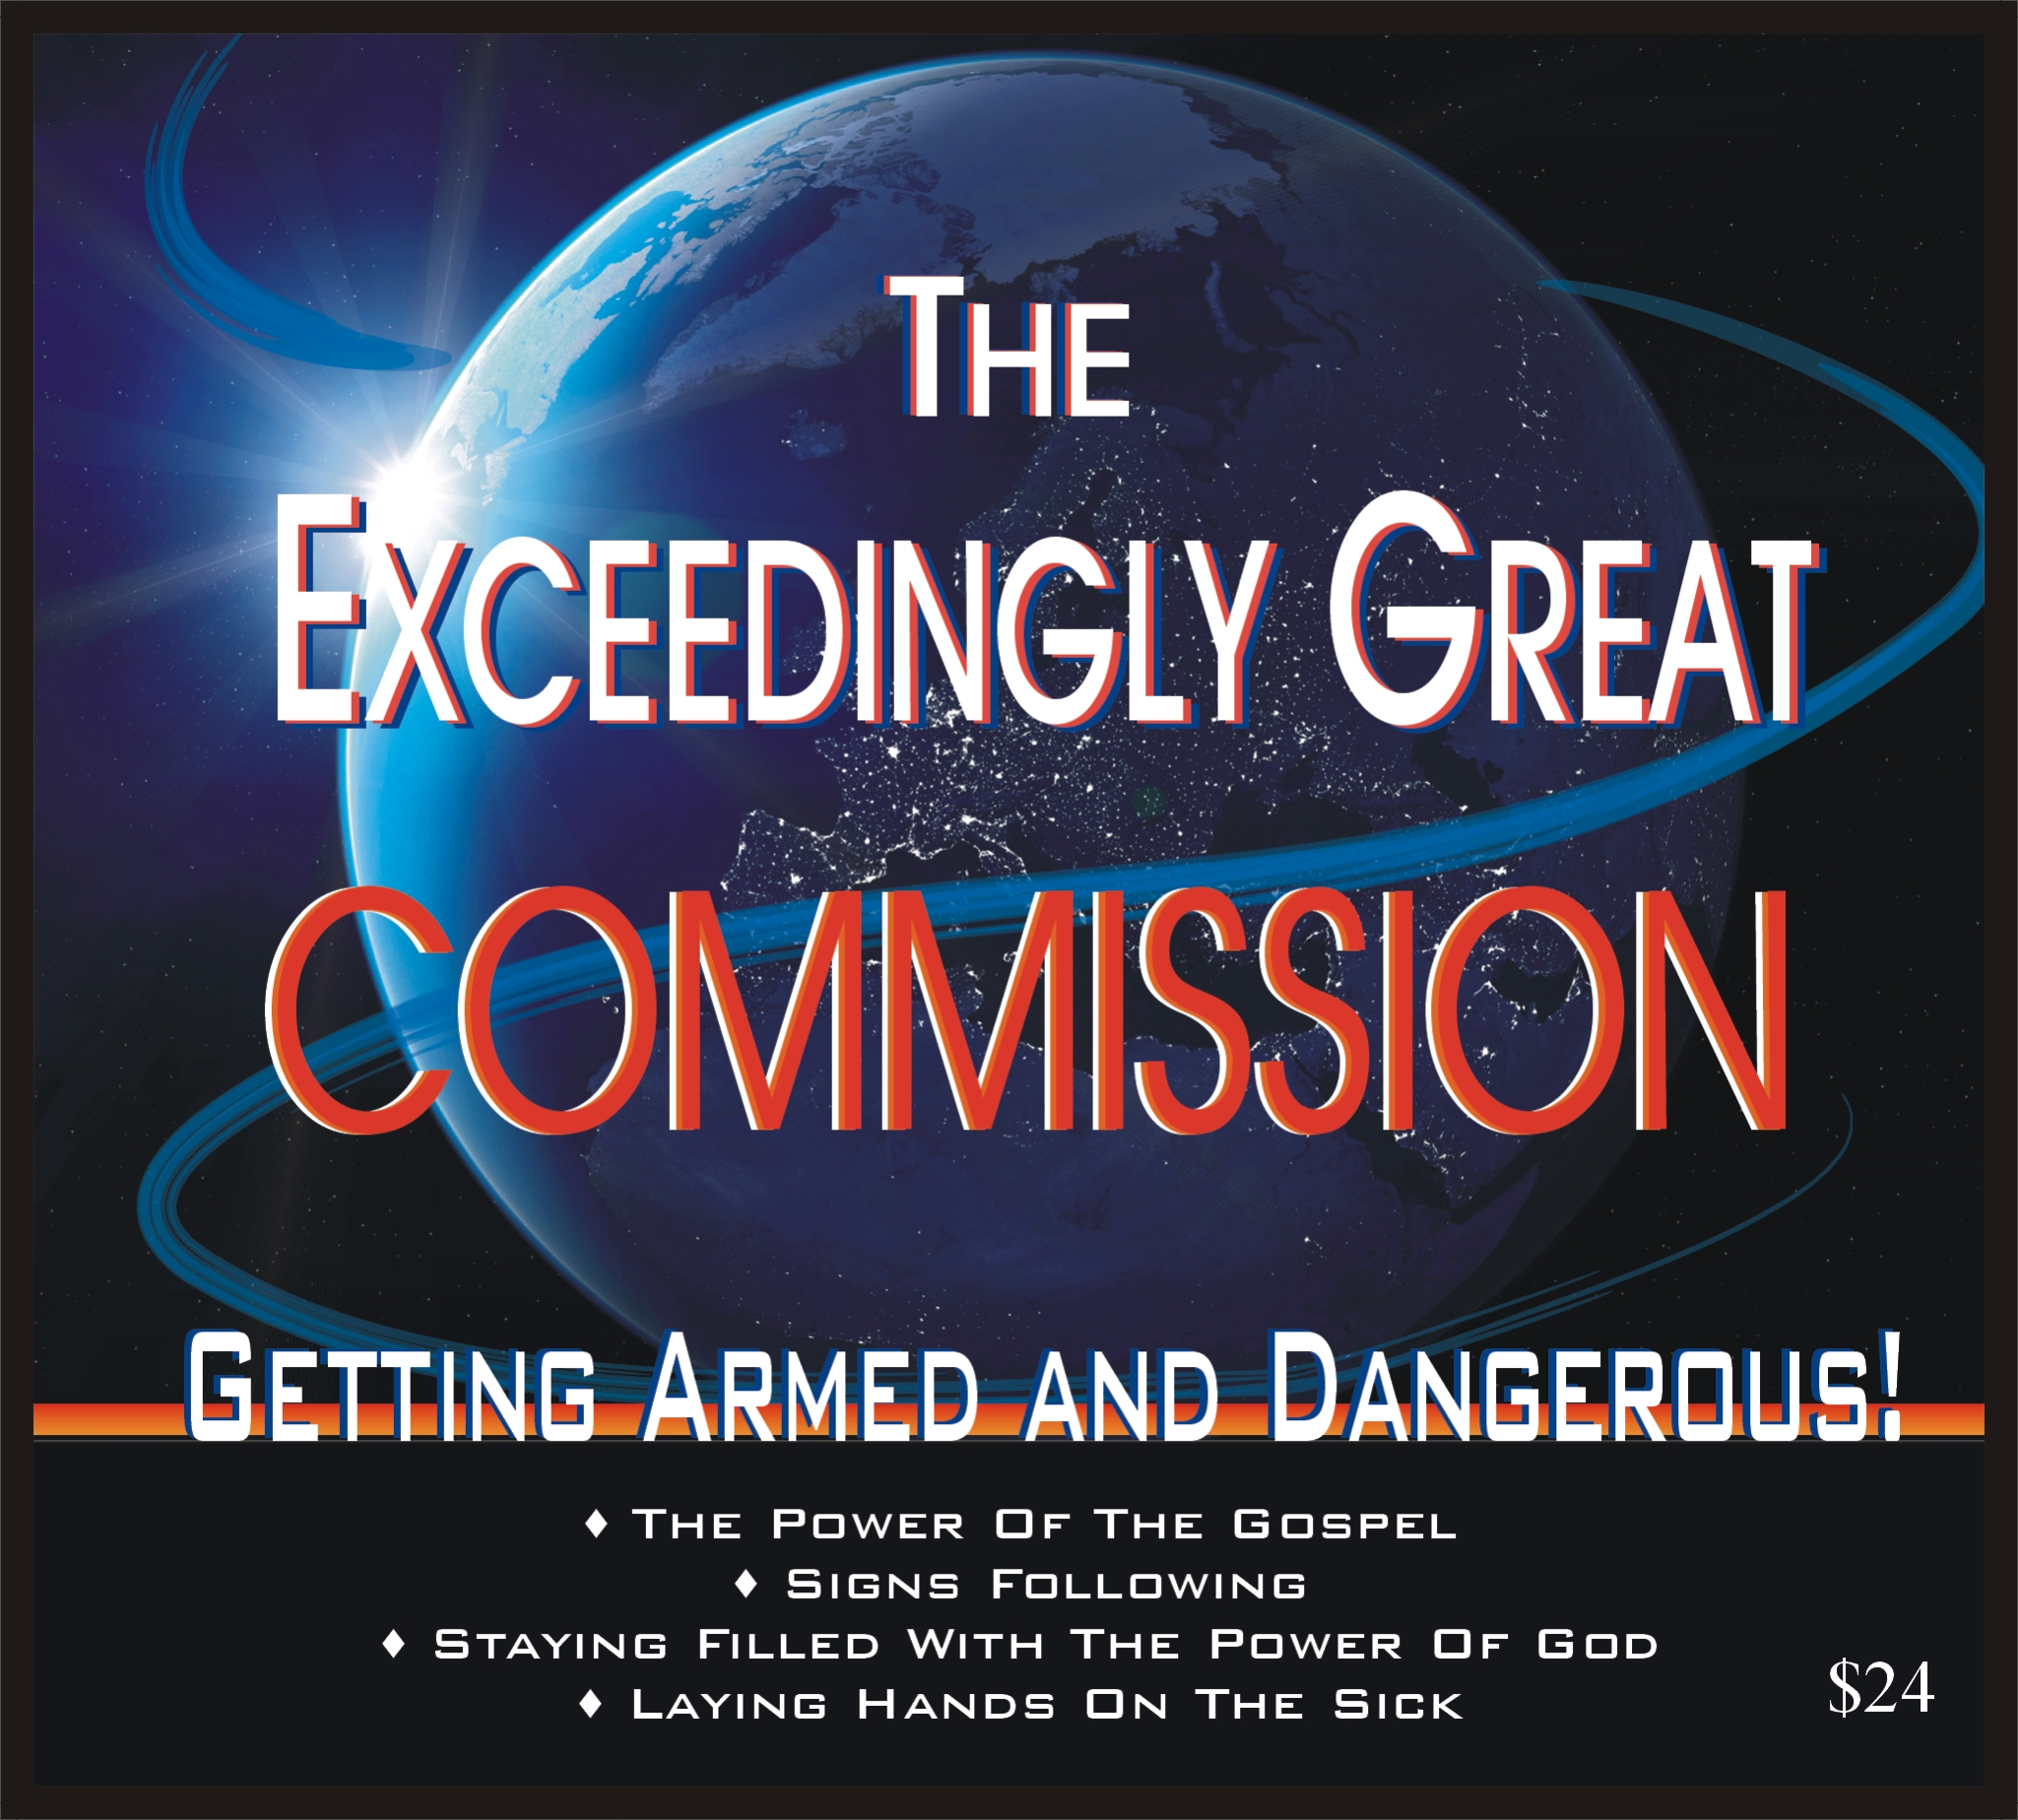 The Exceedingly Great Commission